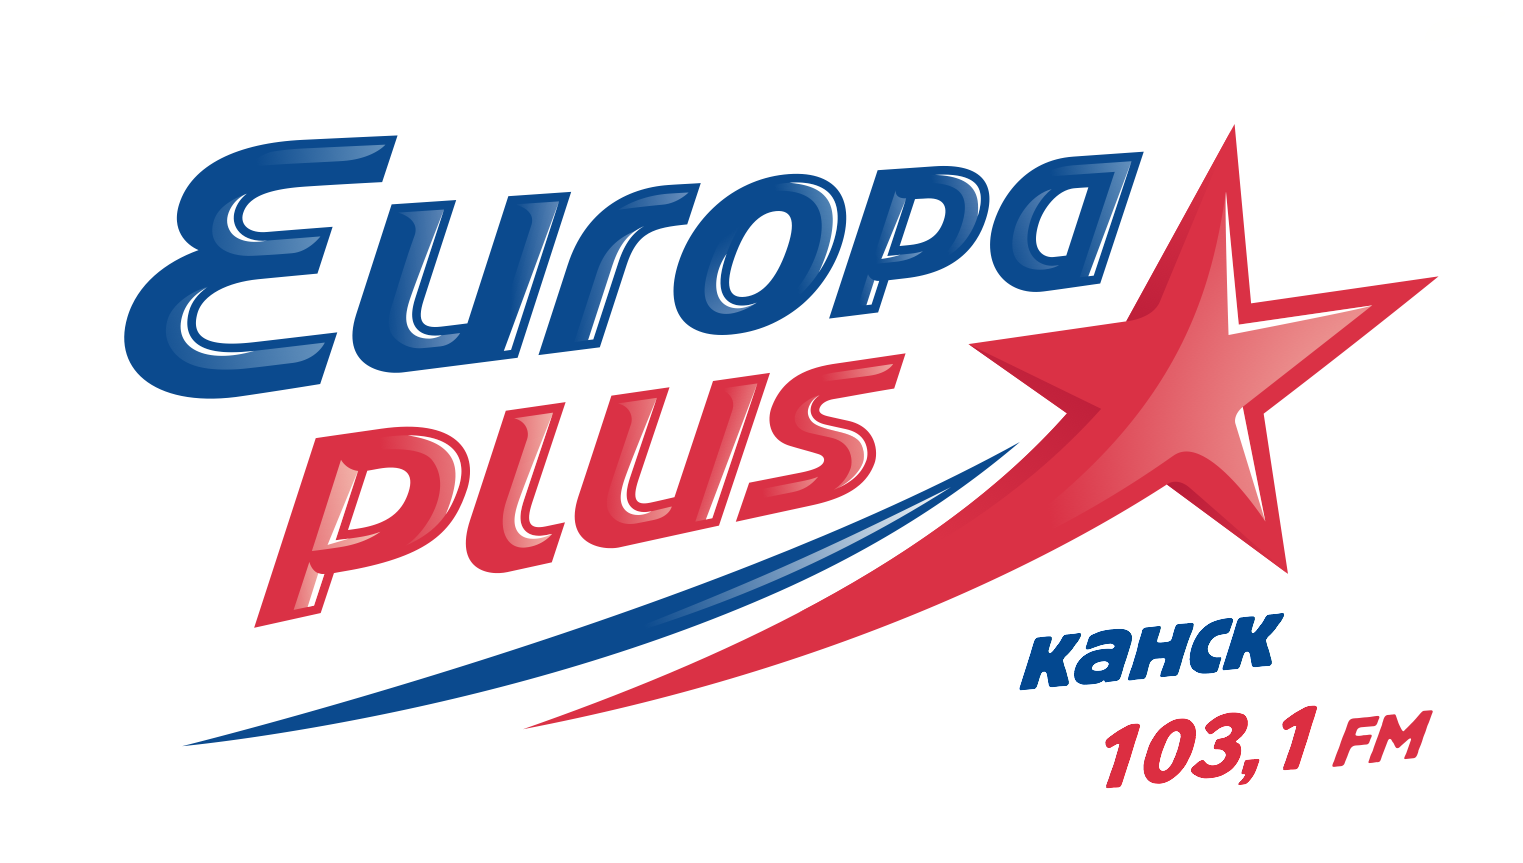 europa_plus_block_2014_Kansk_mini_no_wite